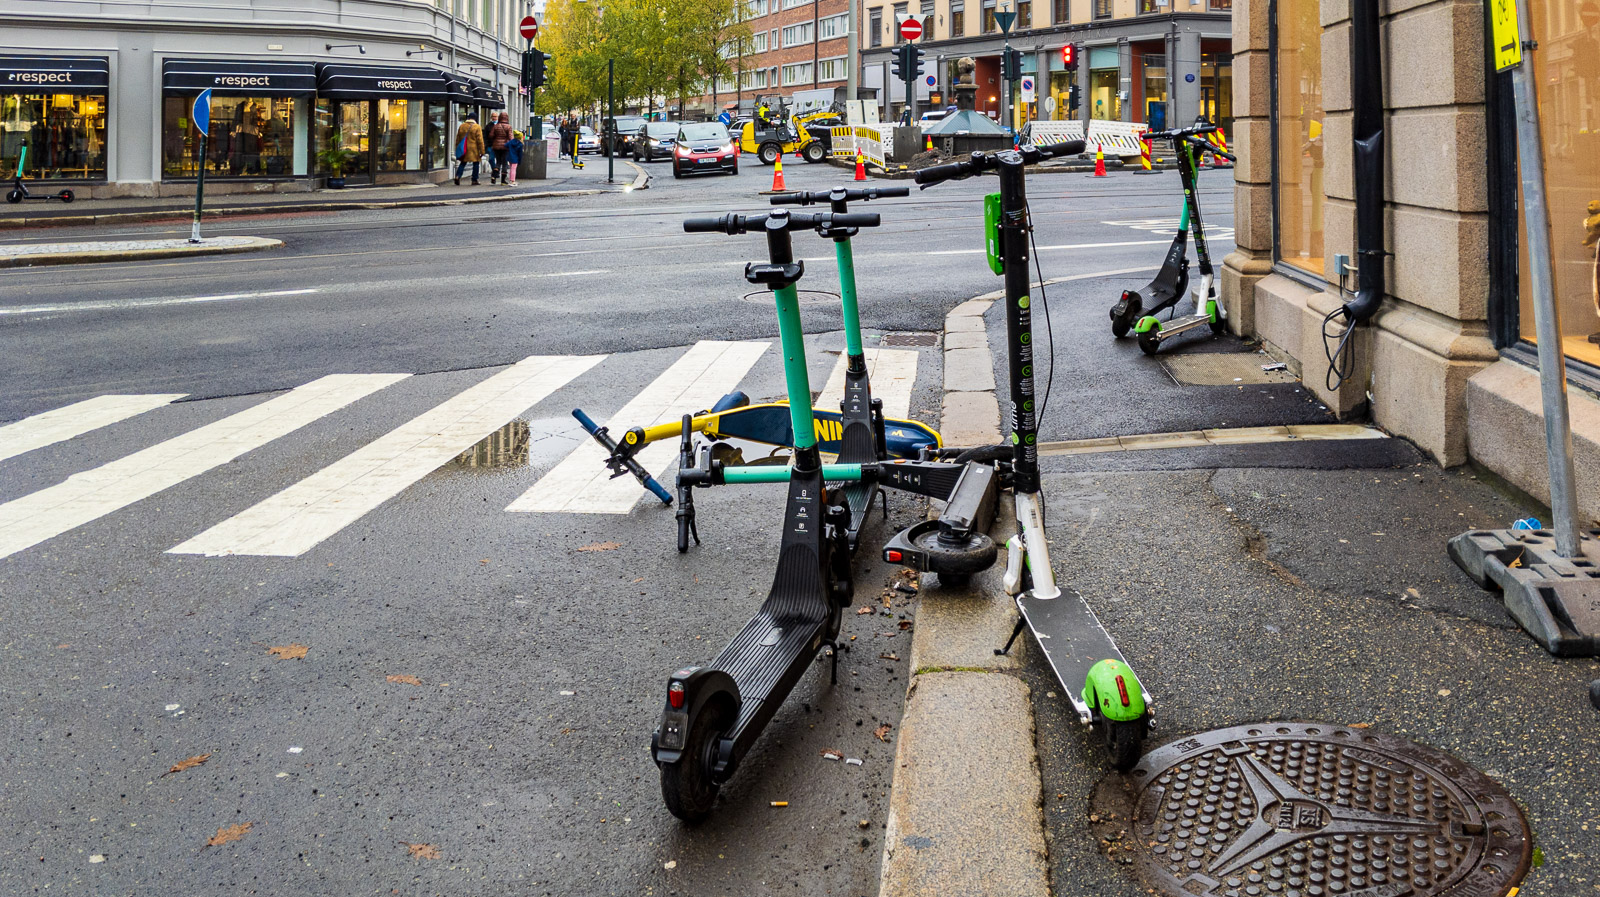 E scooters on sidewalk and pedestrian crossing, Oslo.